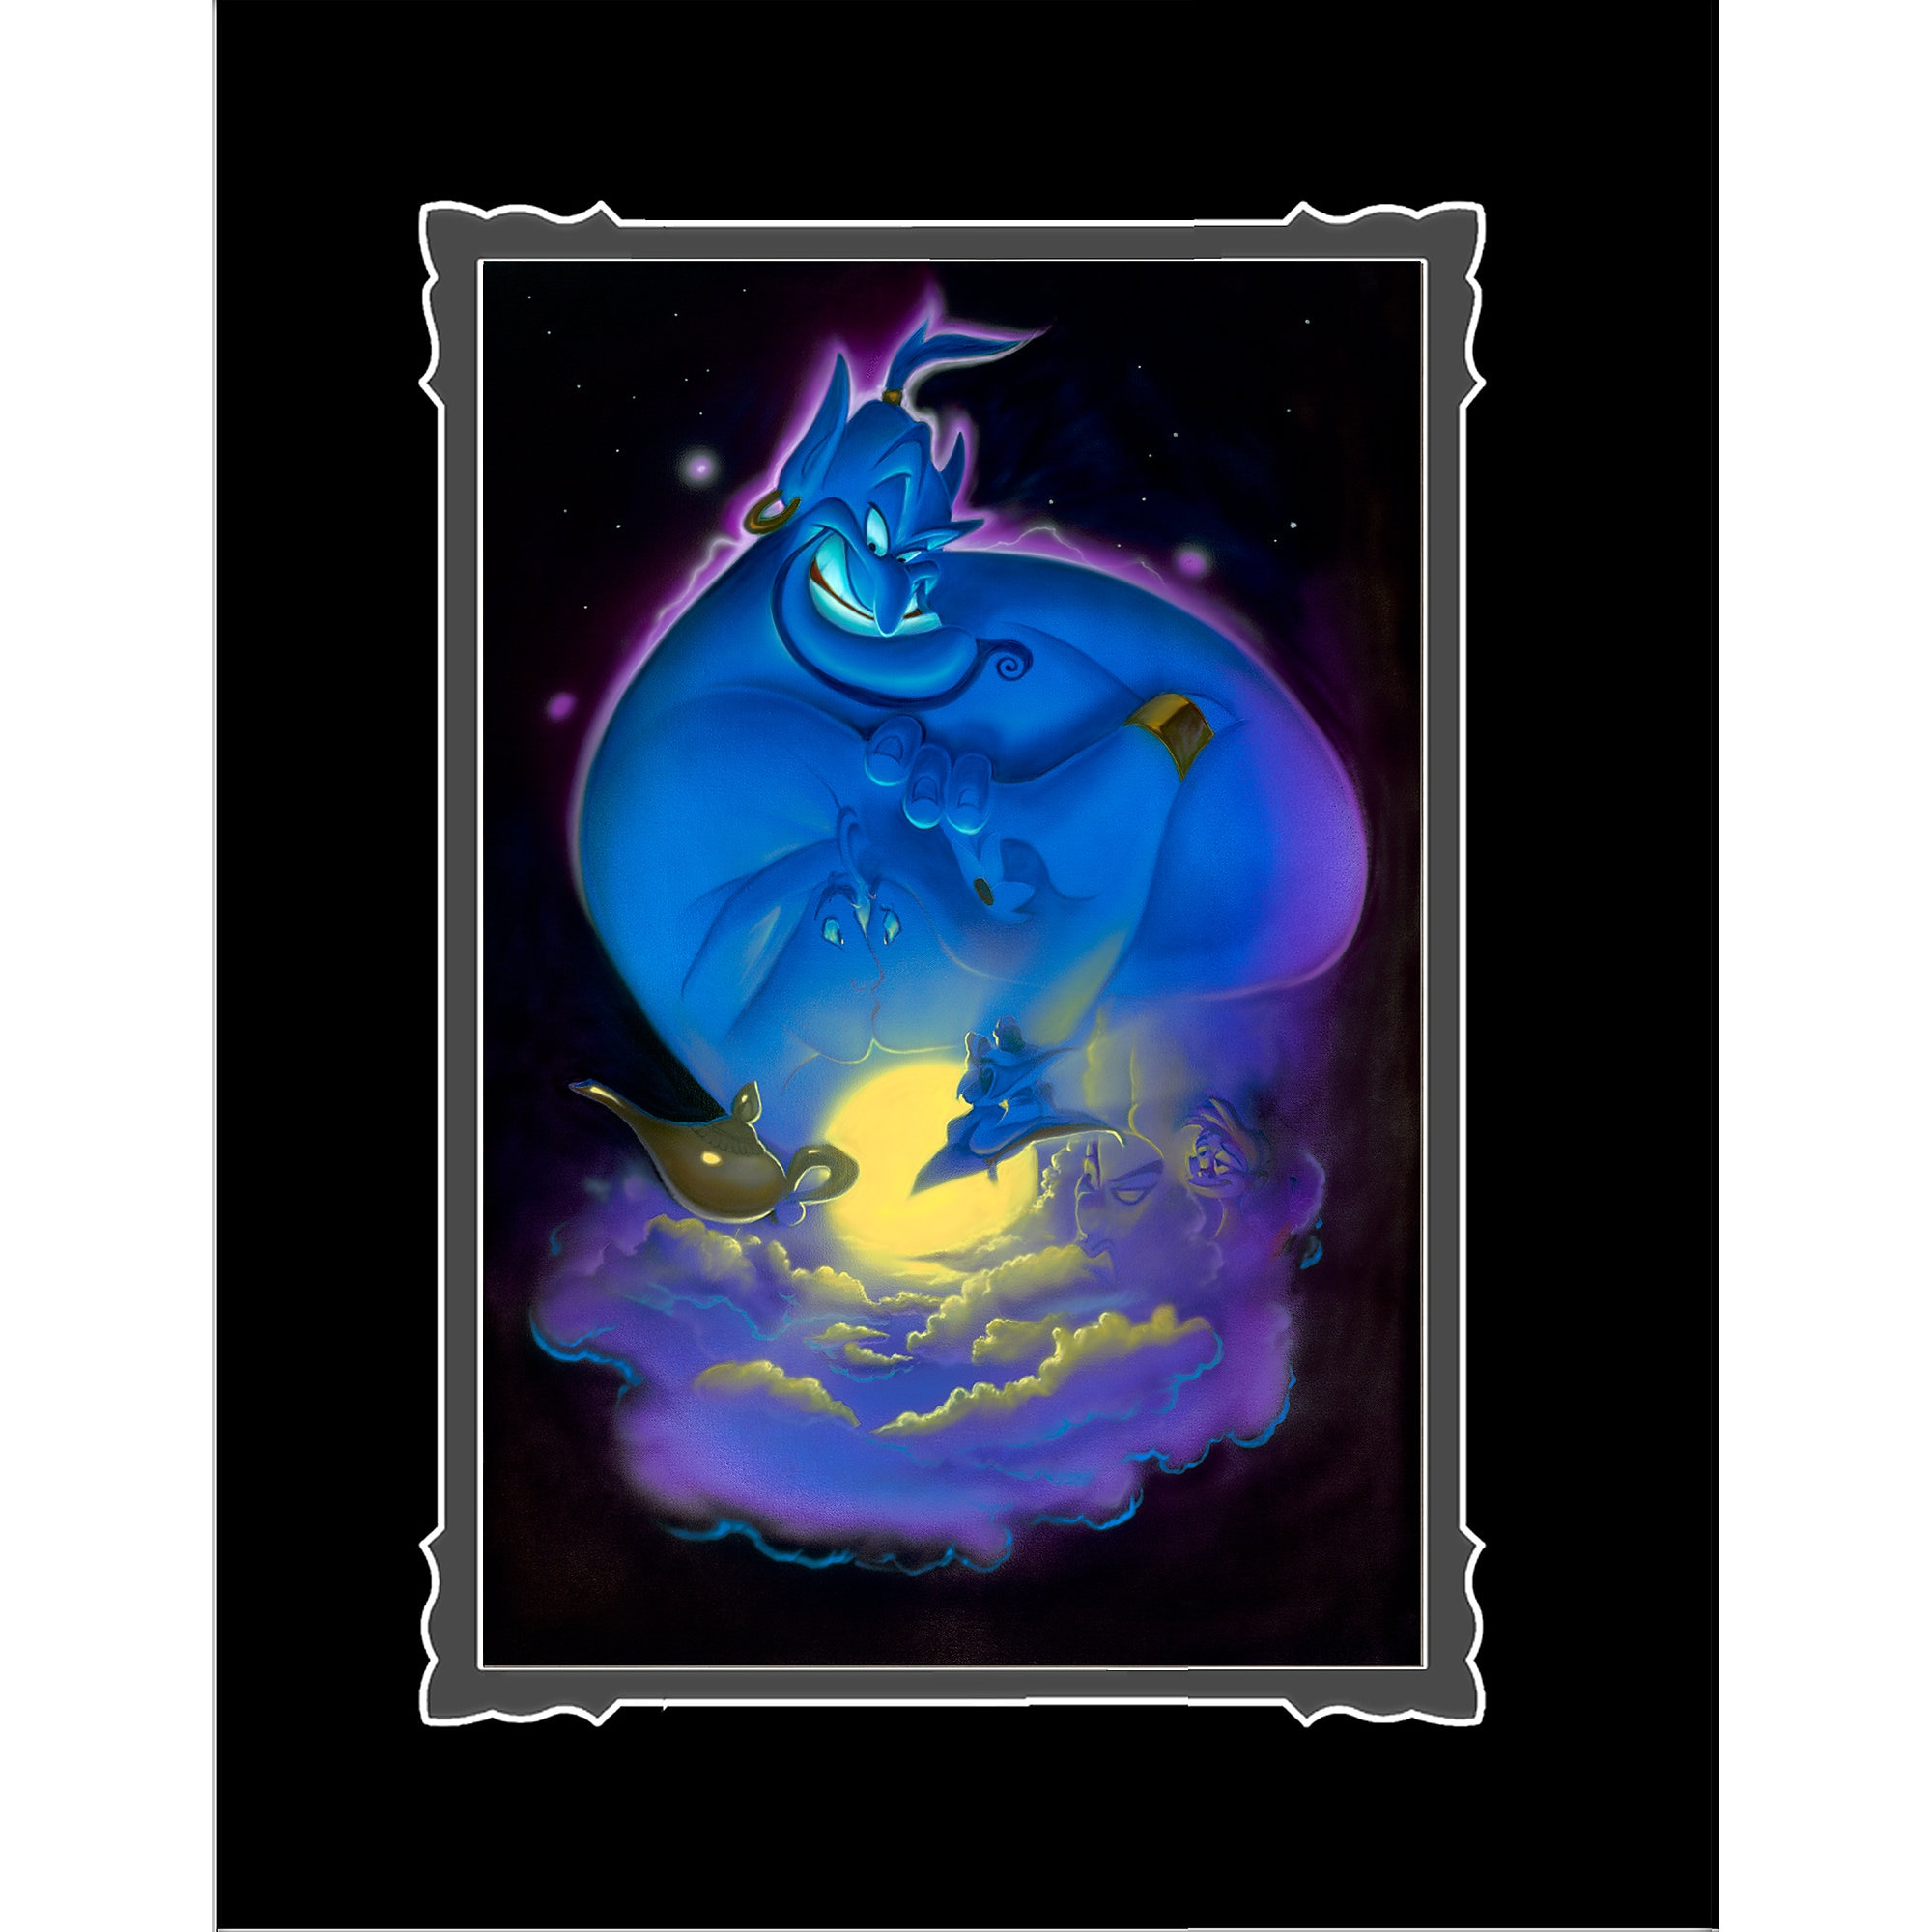 Aladdin ''Your Wish is My Command'' Deluxe Print by Noah